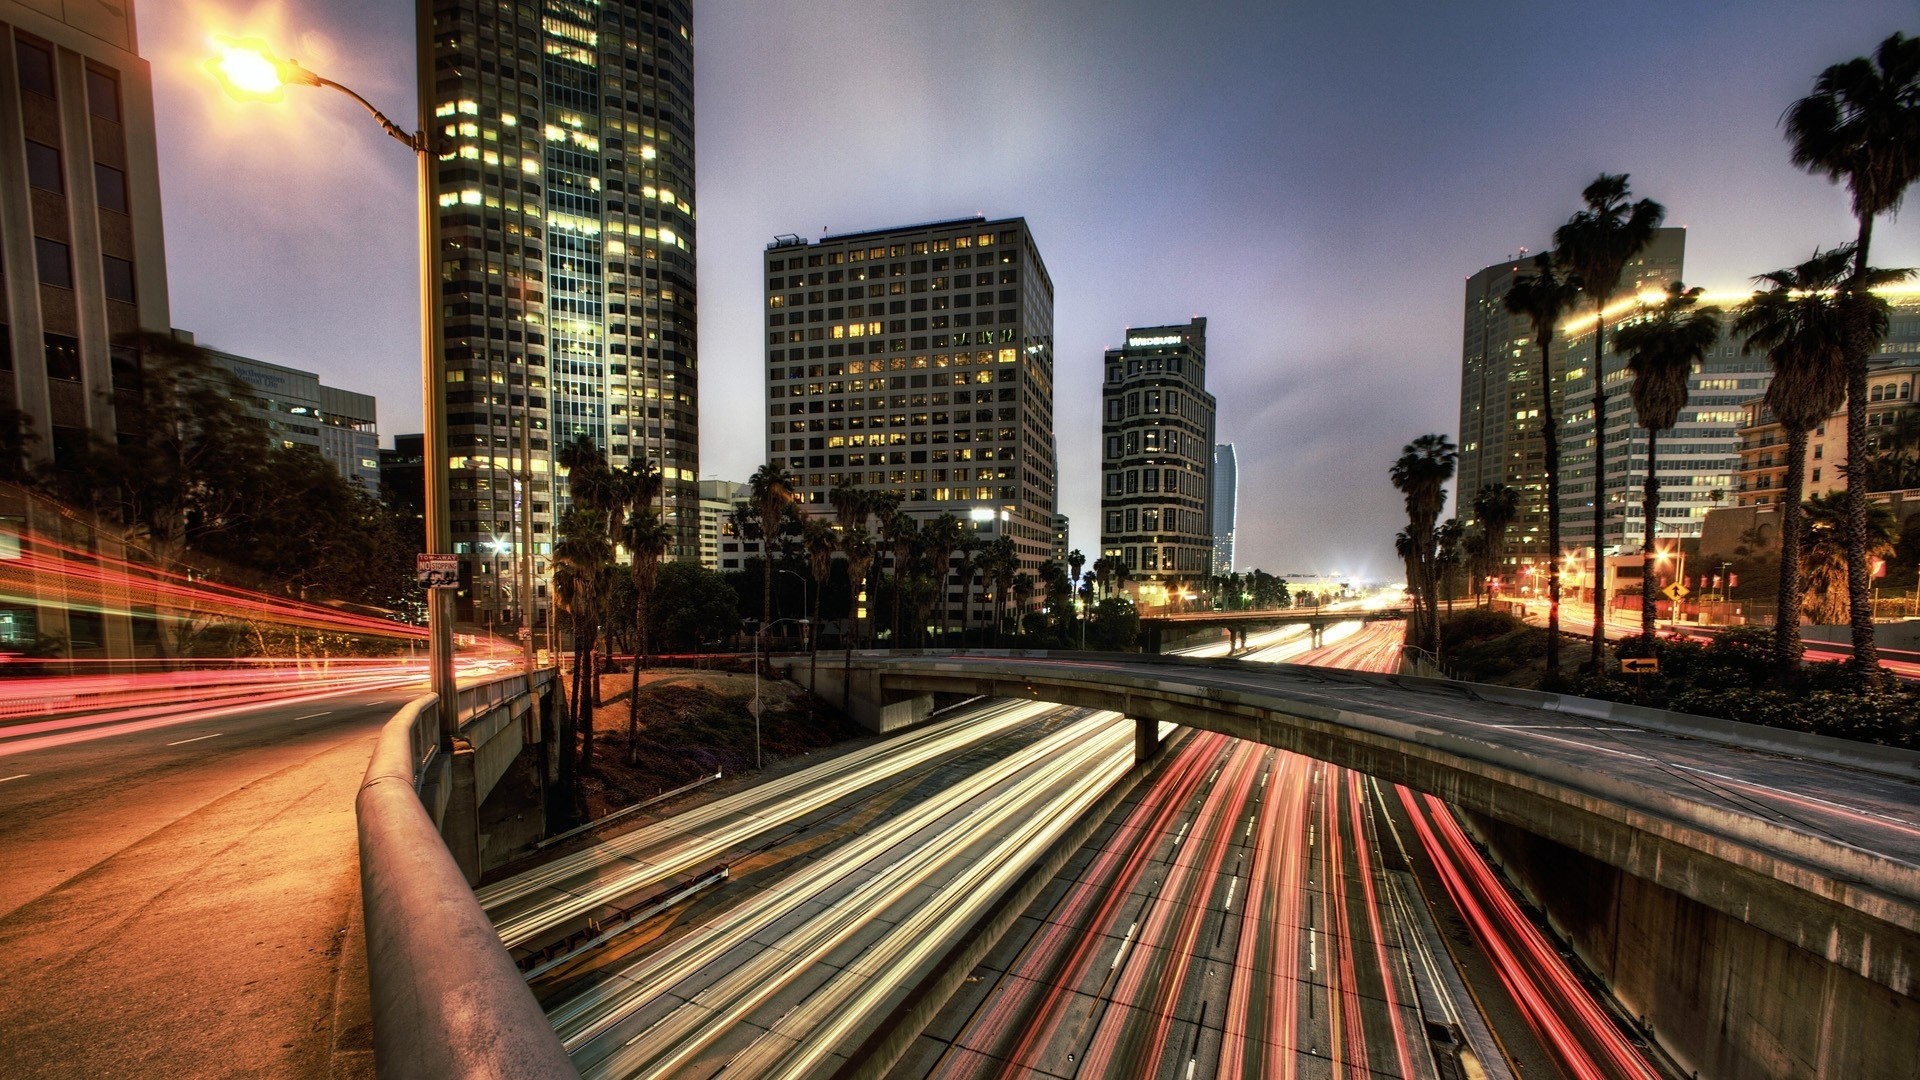 los angeles hd background